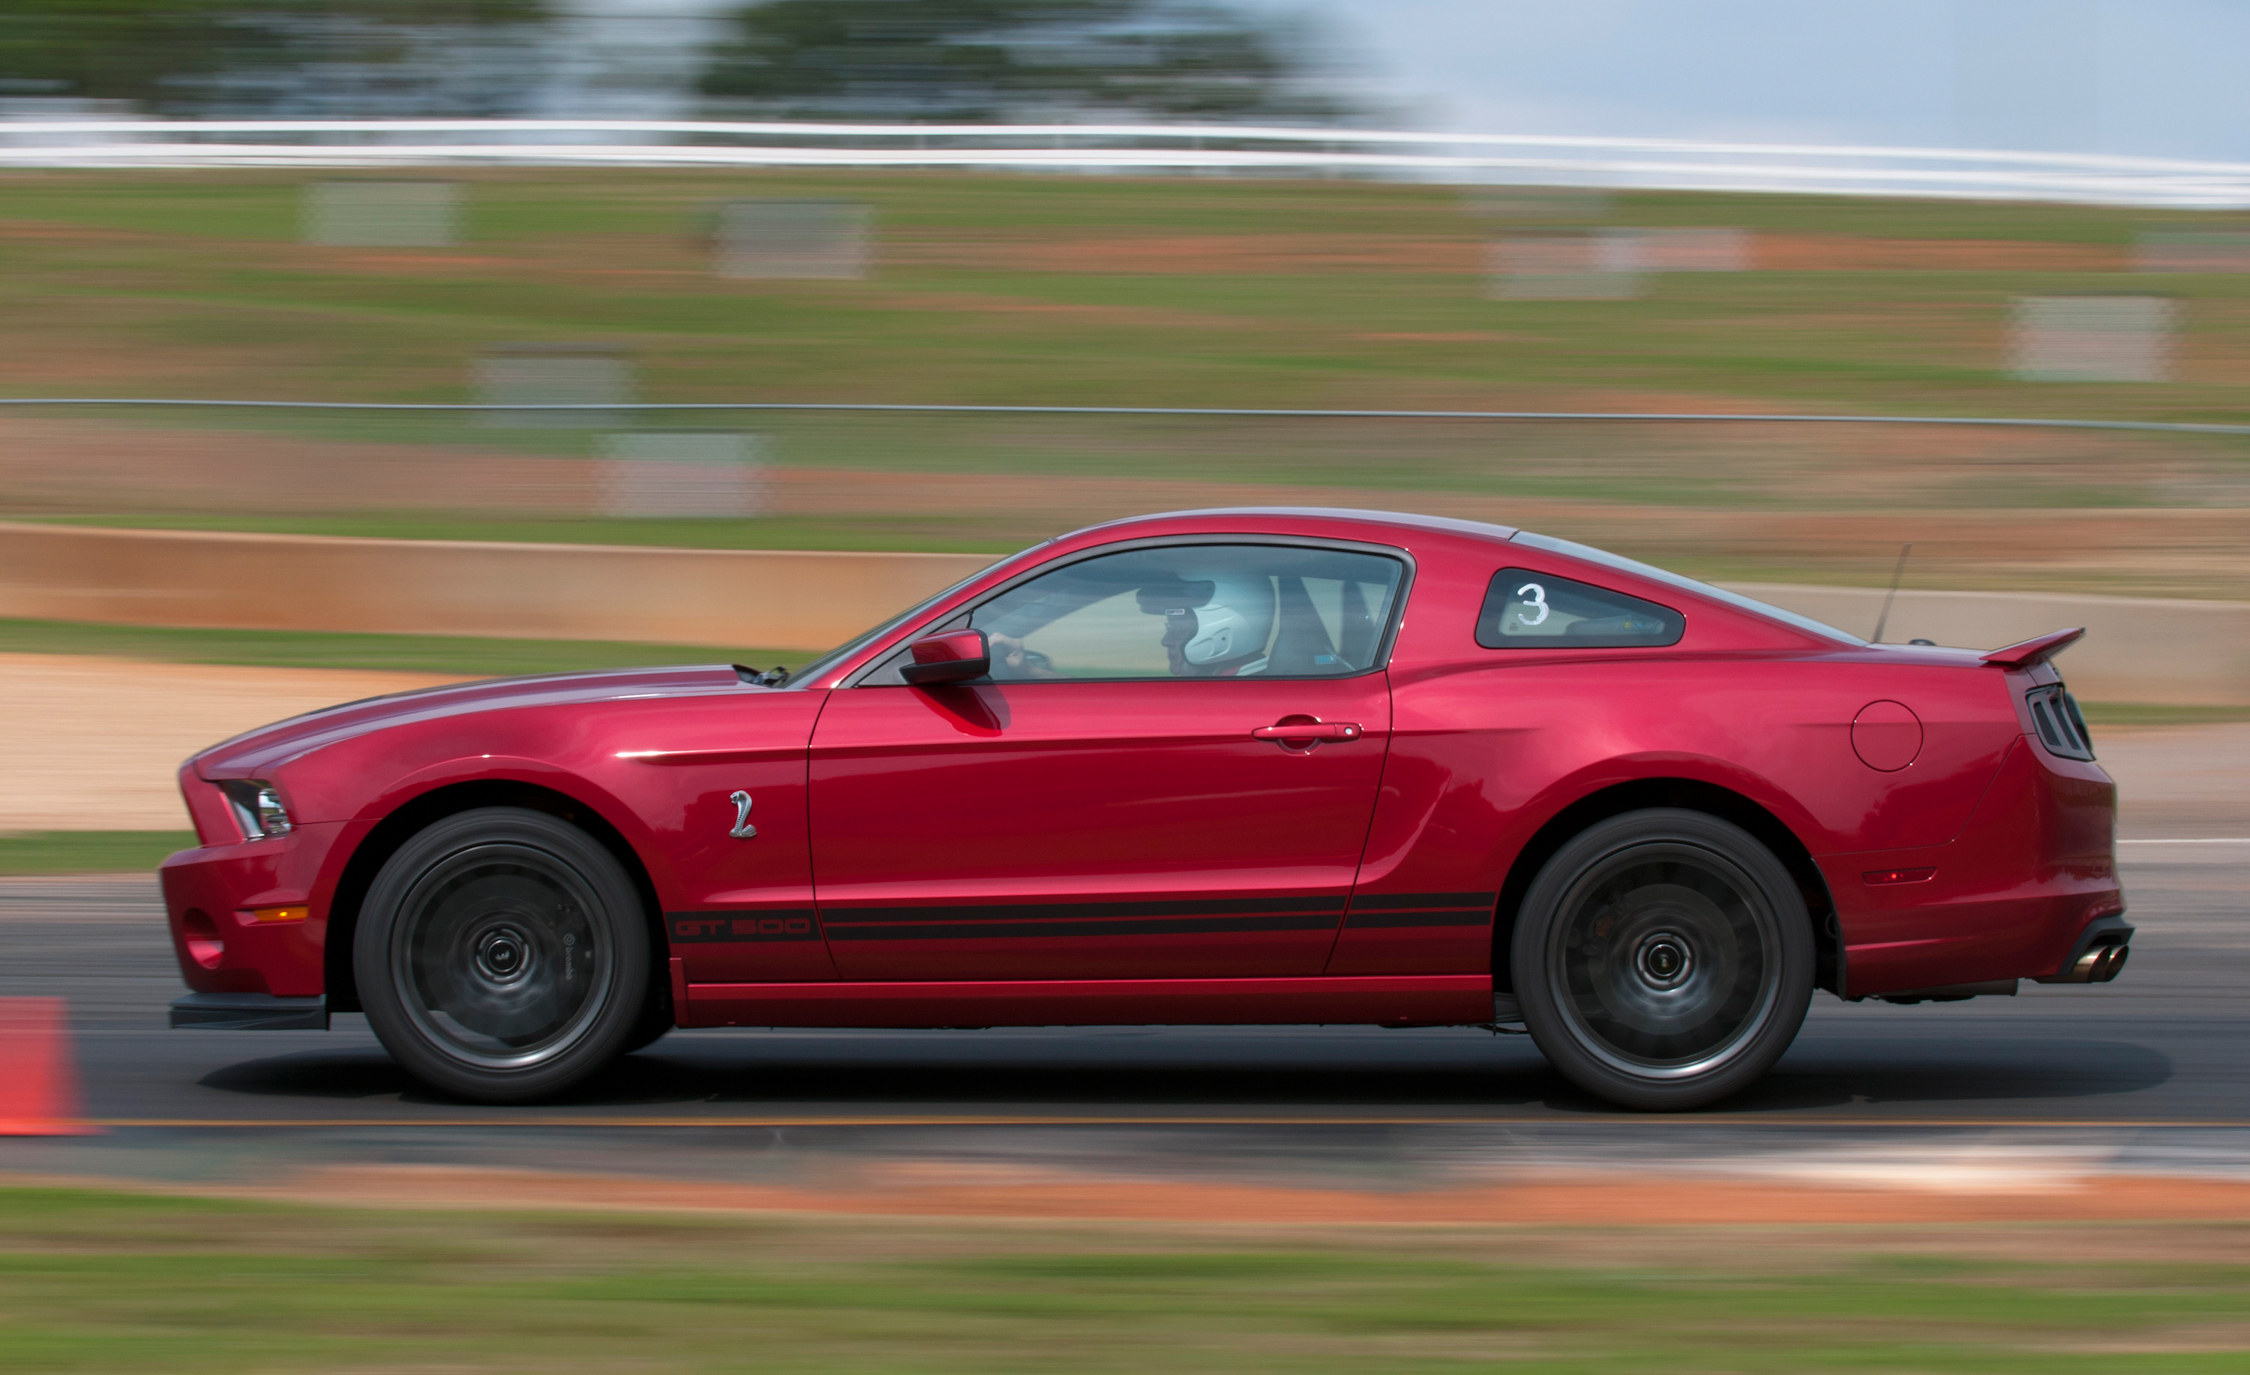 2013 Ford Mustang Shelby GT500 Red Test Drive Side View (Photo 40 of 47)